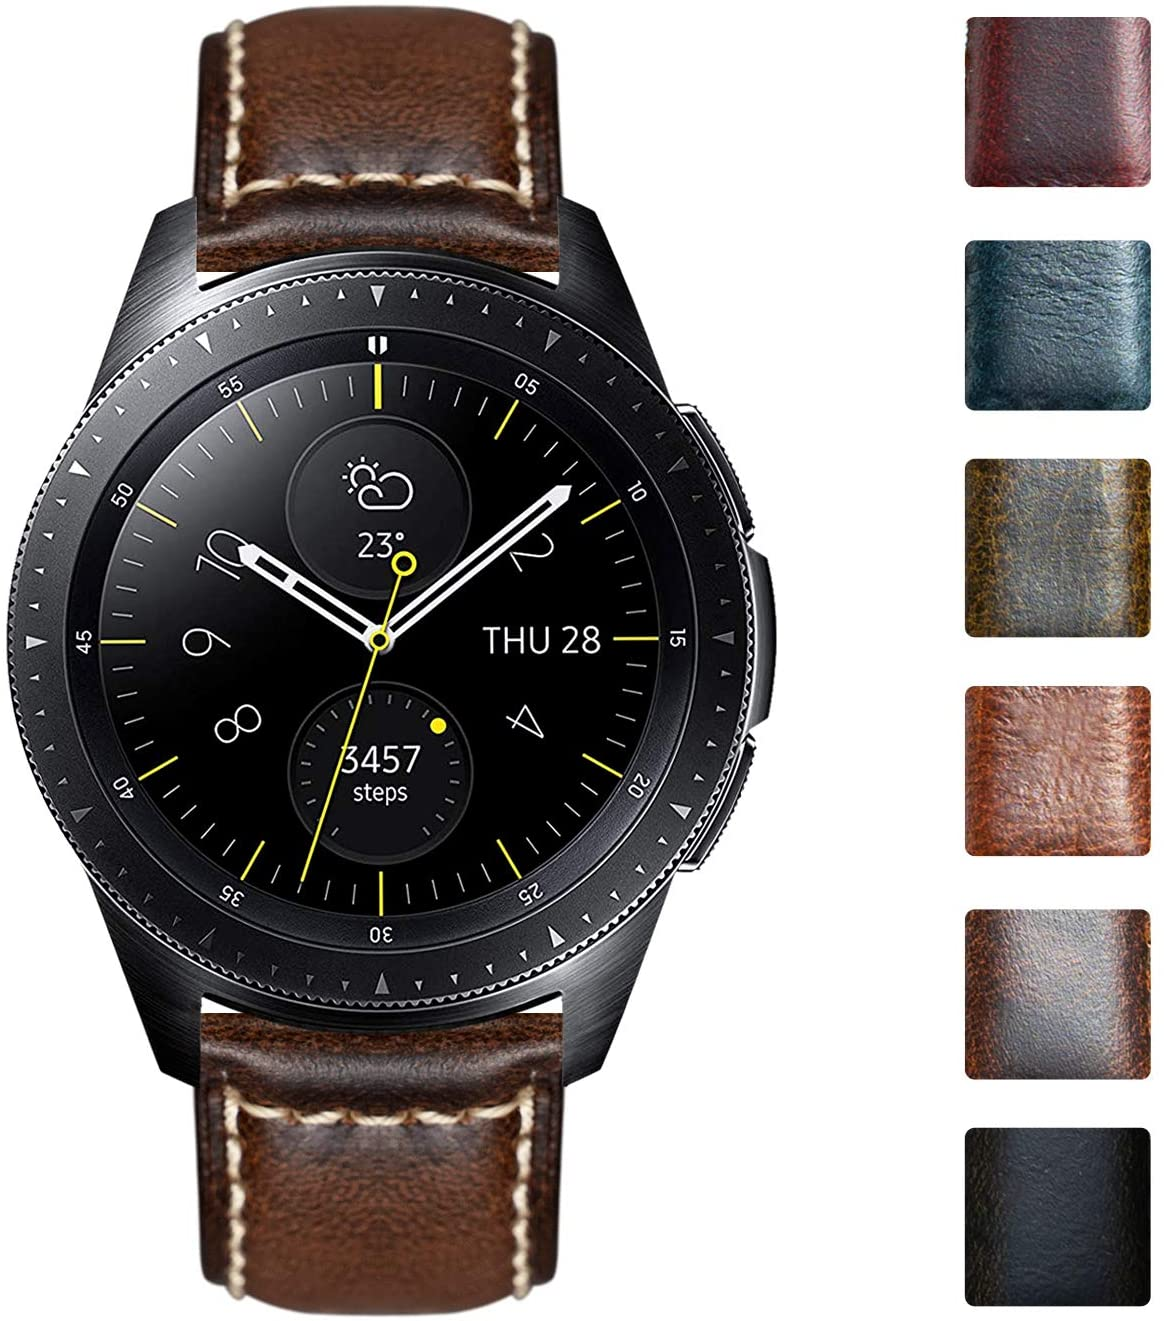 Watch Bands Compatible with Samsung Galaxy Watch 42mm/46mm,Active 2,Samsung Gear S3 Classic/Frontier Smartwatch Vintage Oil Wax Calfskin Leather Straps Replacement 20mm 22mm Wristband for Men Woman